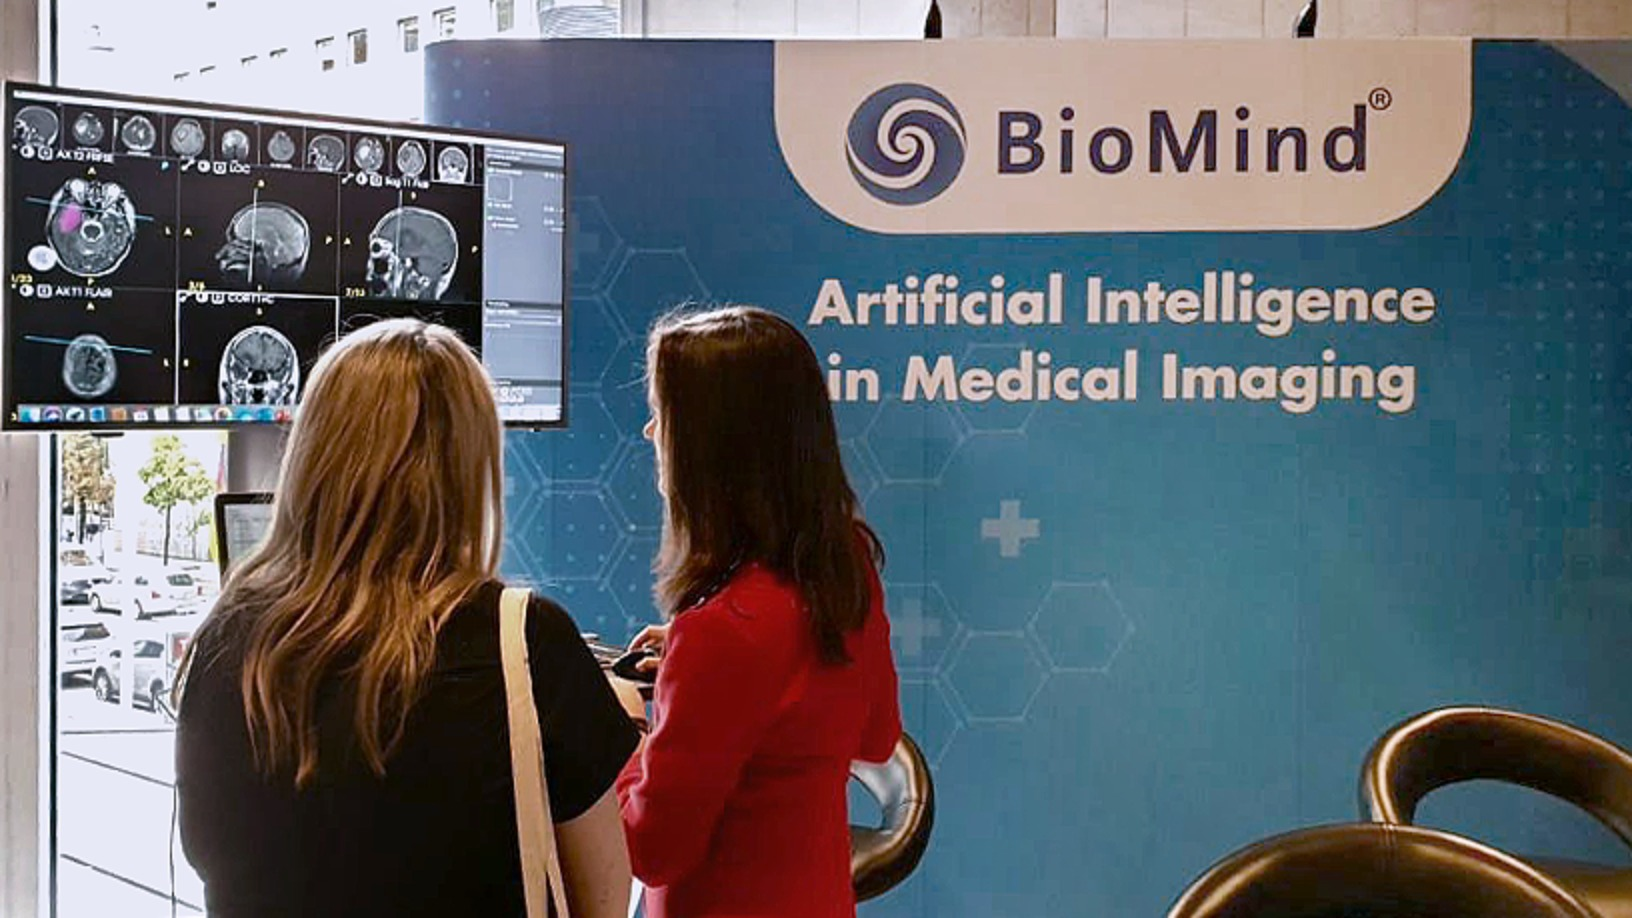 BioMind: AI medical diagnostics with over 90% accuracy for 100 diseases